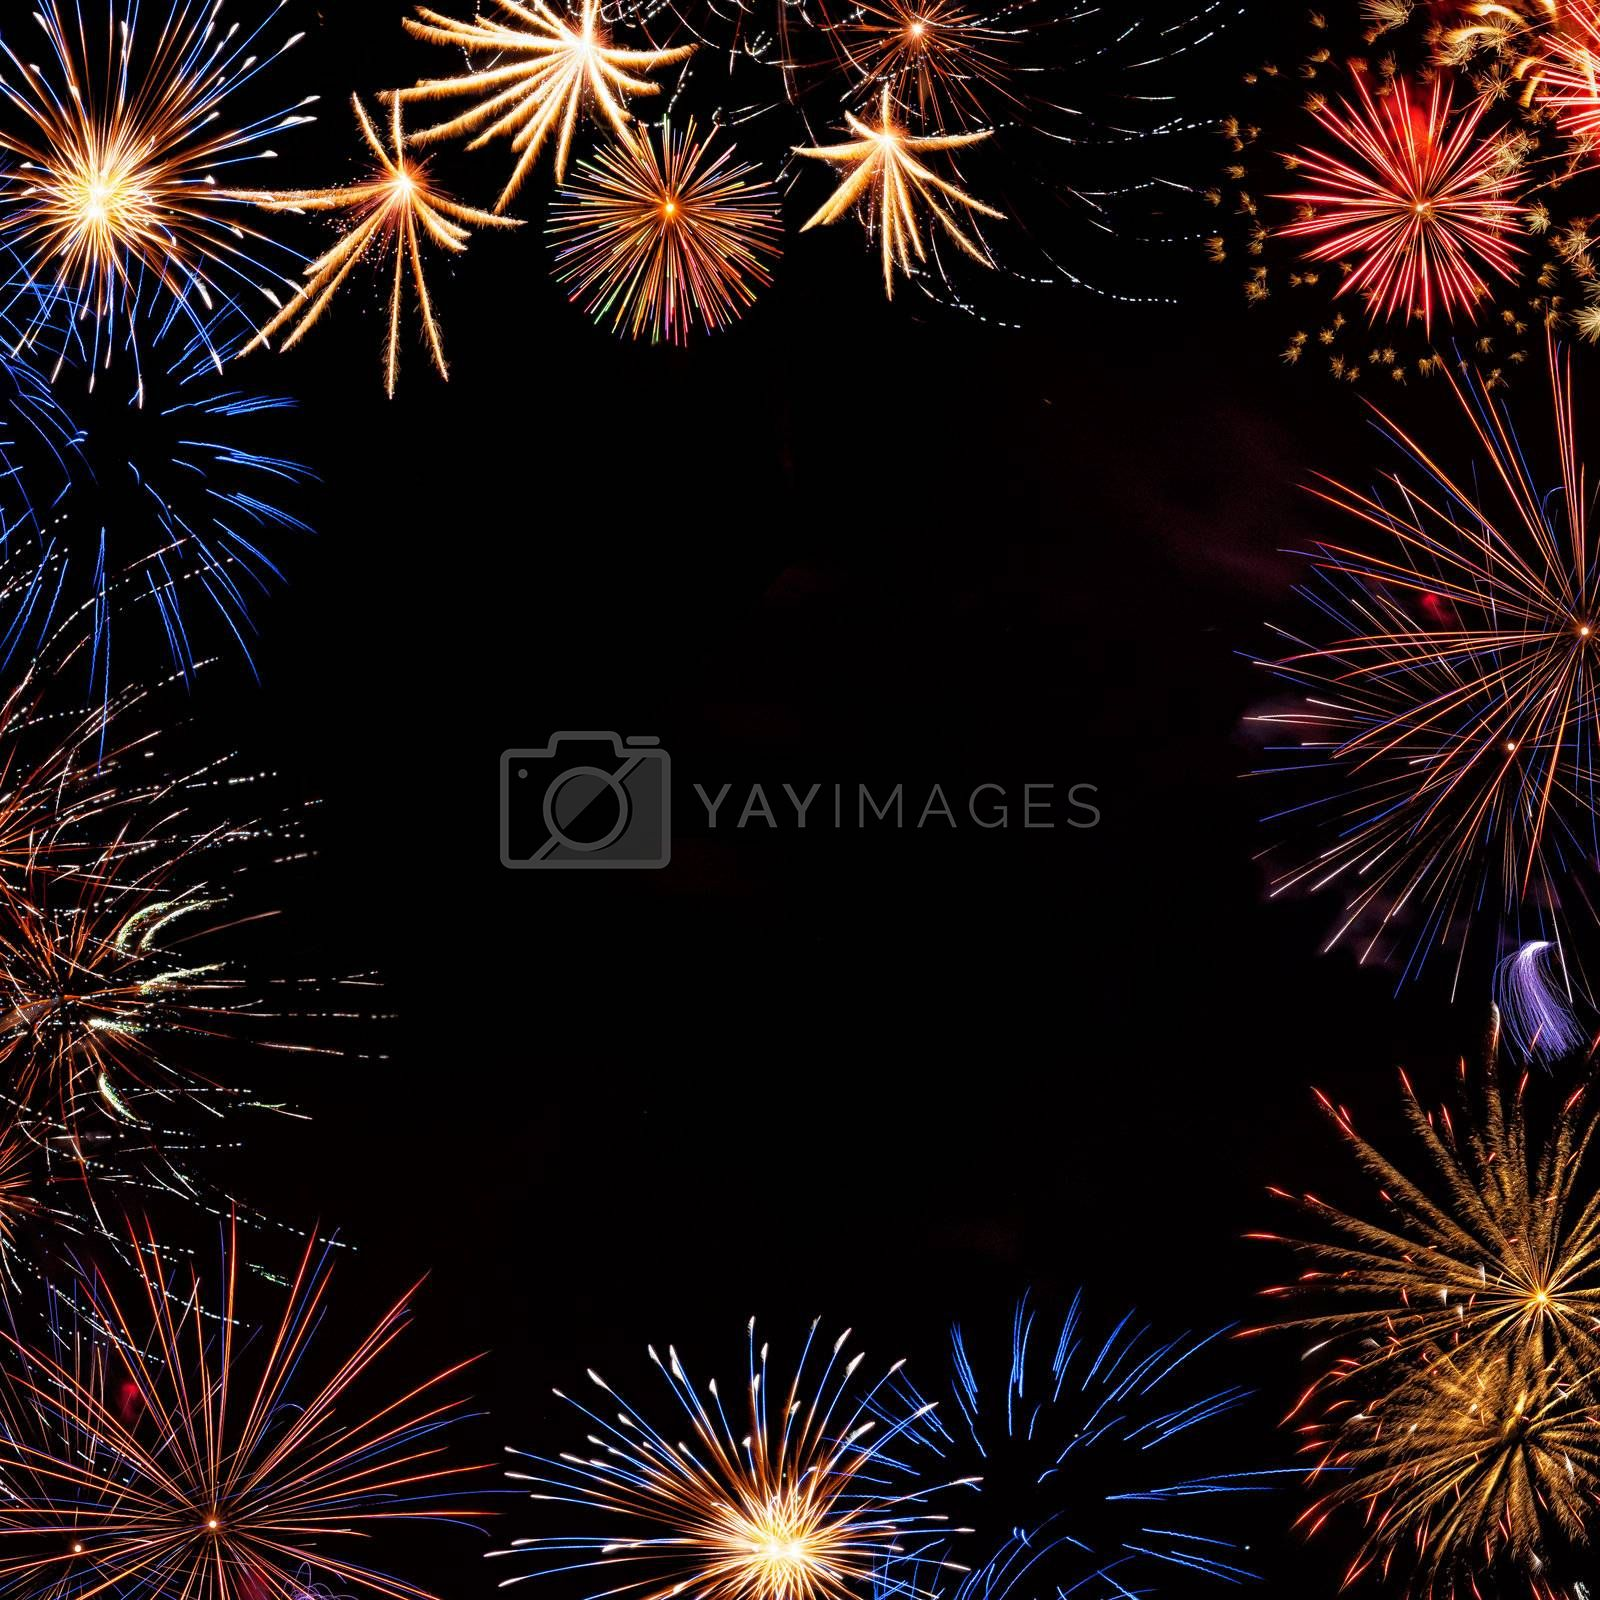 Frame from colorful holiday fireworks with place for your text, for design